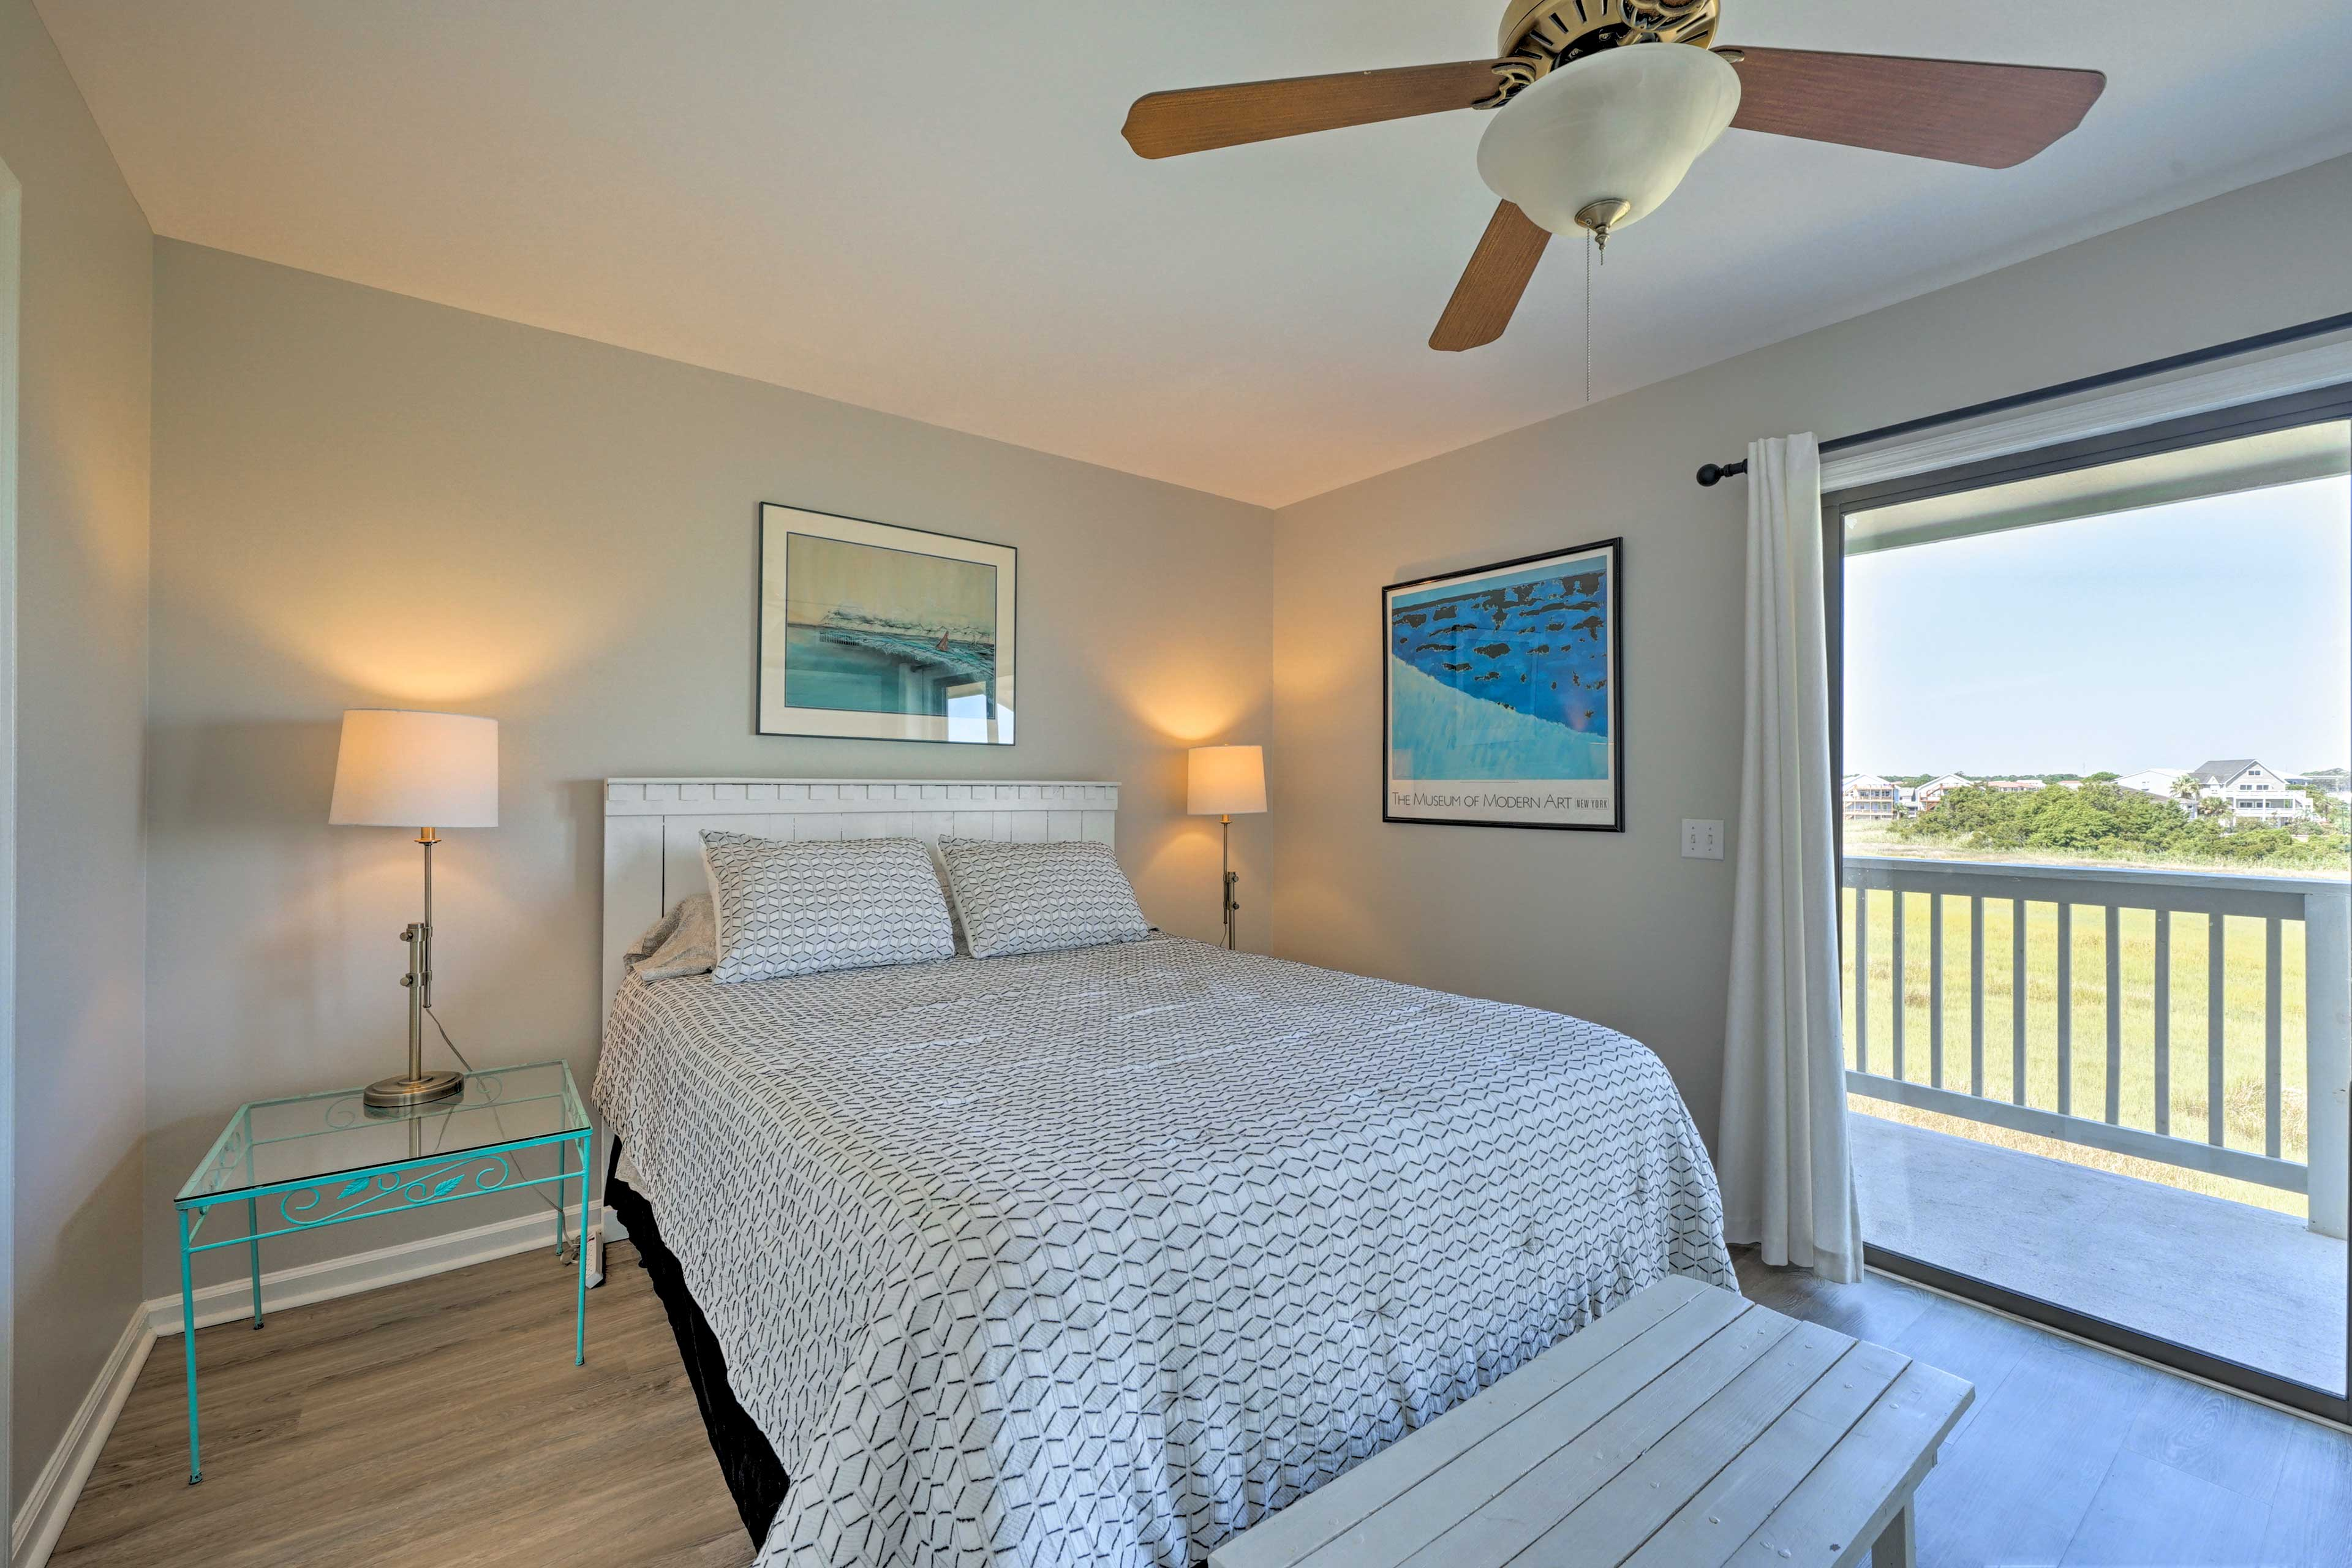 Fall into this queen-sized bed after a day at the beach!